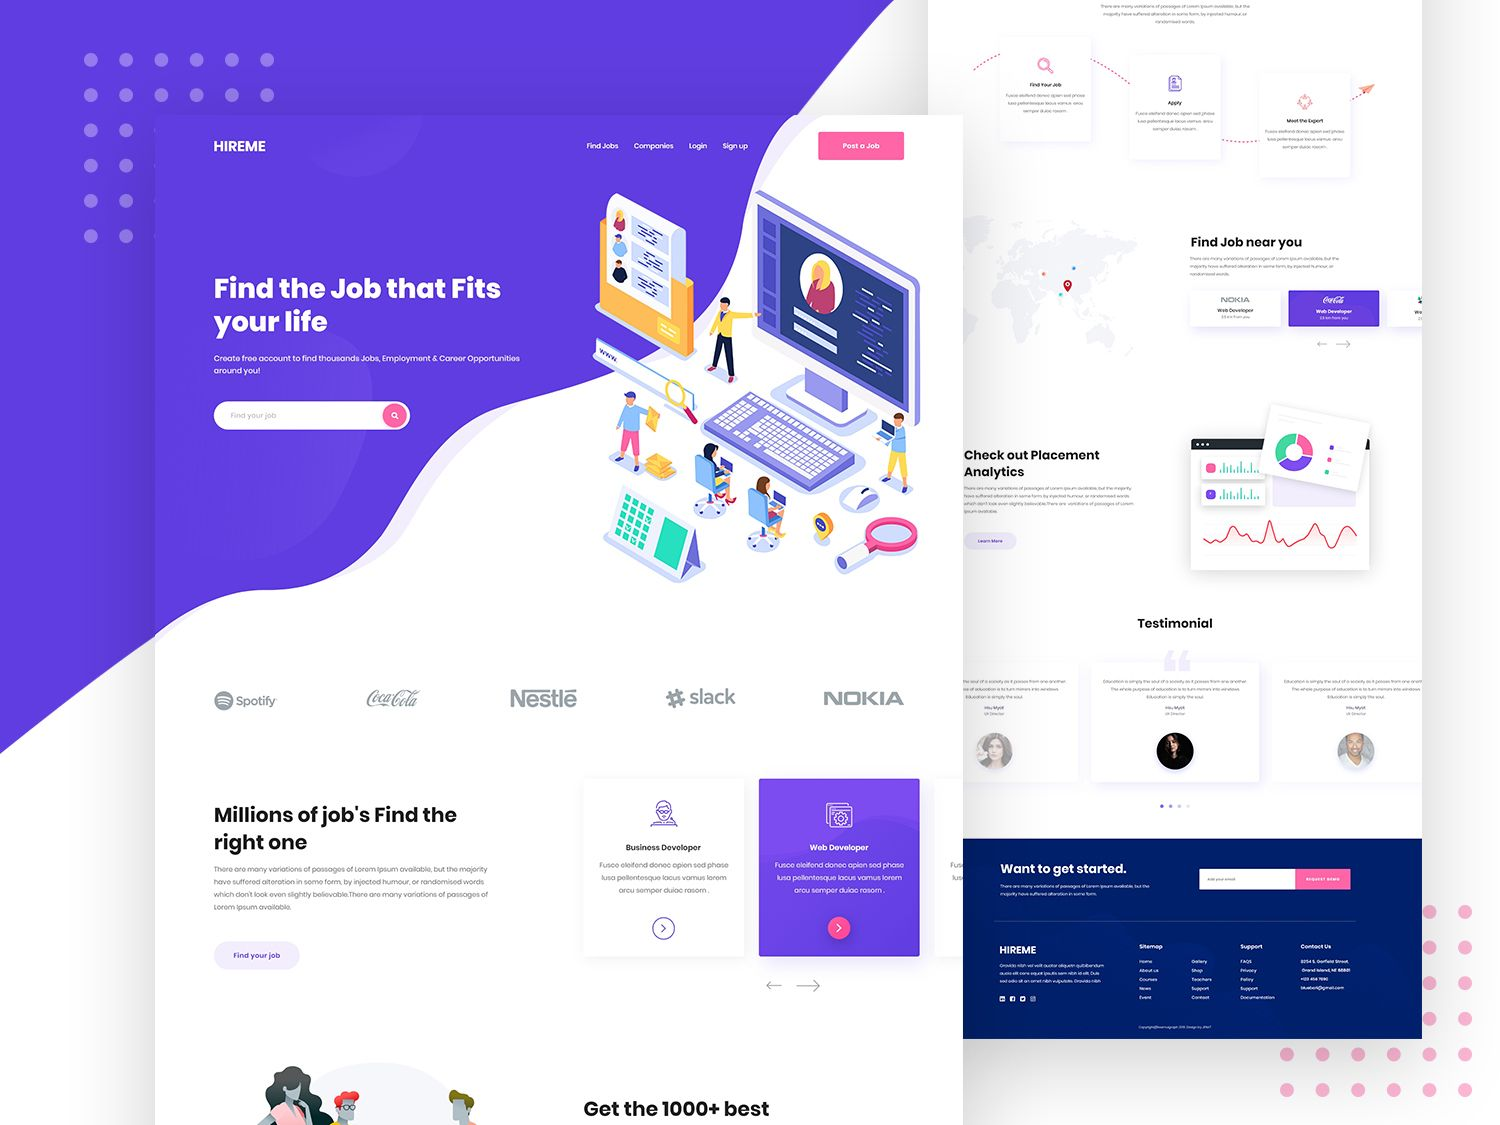 Job Portal Landing Page Typography Ios Clean Uigraph Trend 2019 Work Job Design Creative Gradient Color Website Uiux Corporate Job Portal Landing Page Job Page